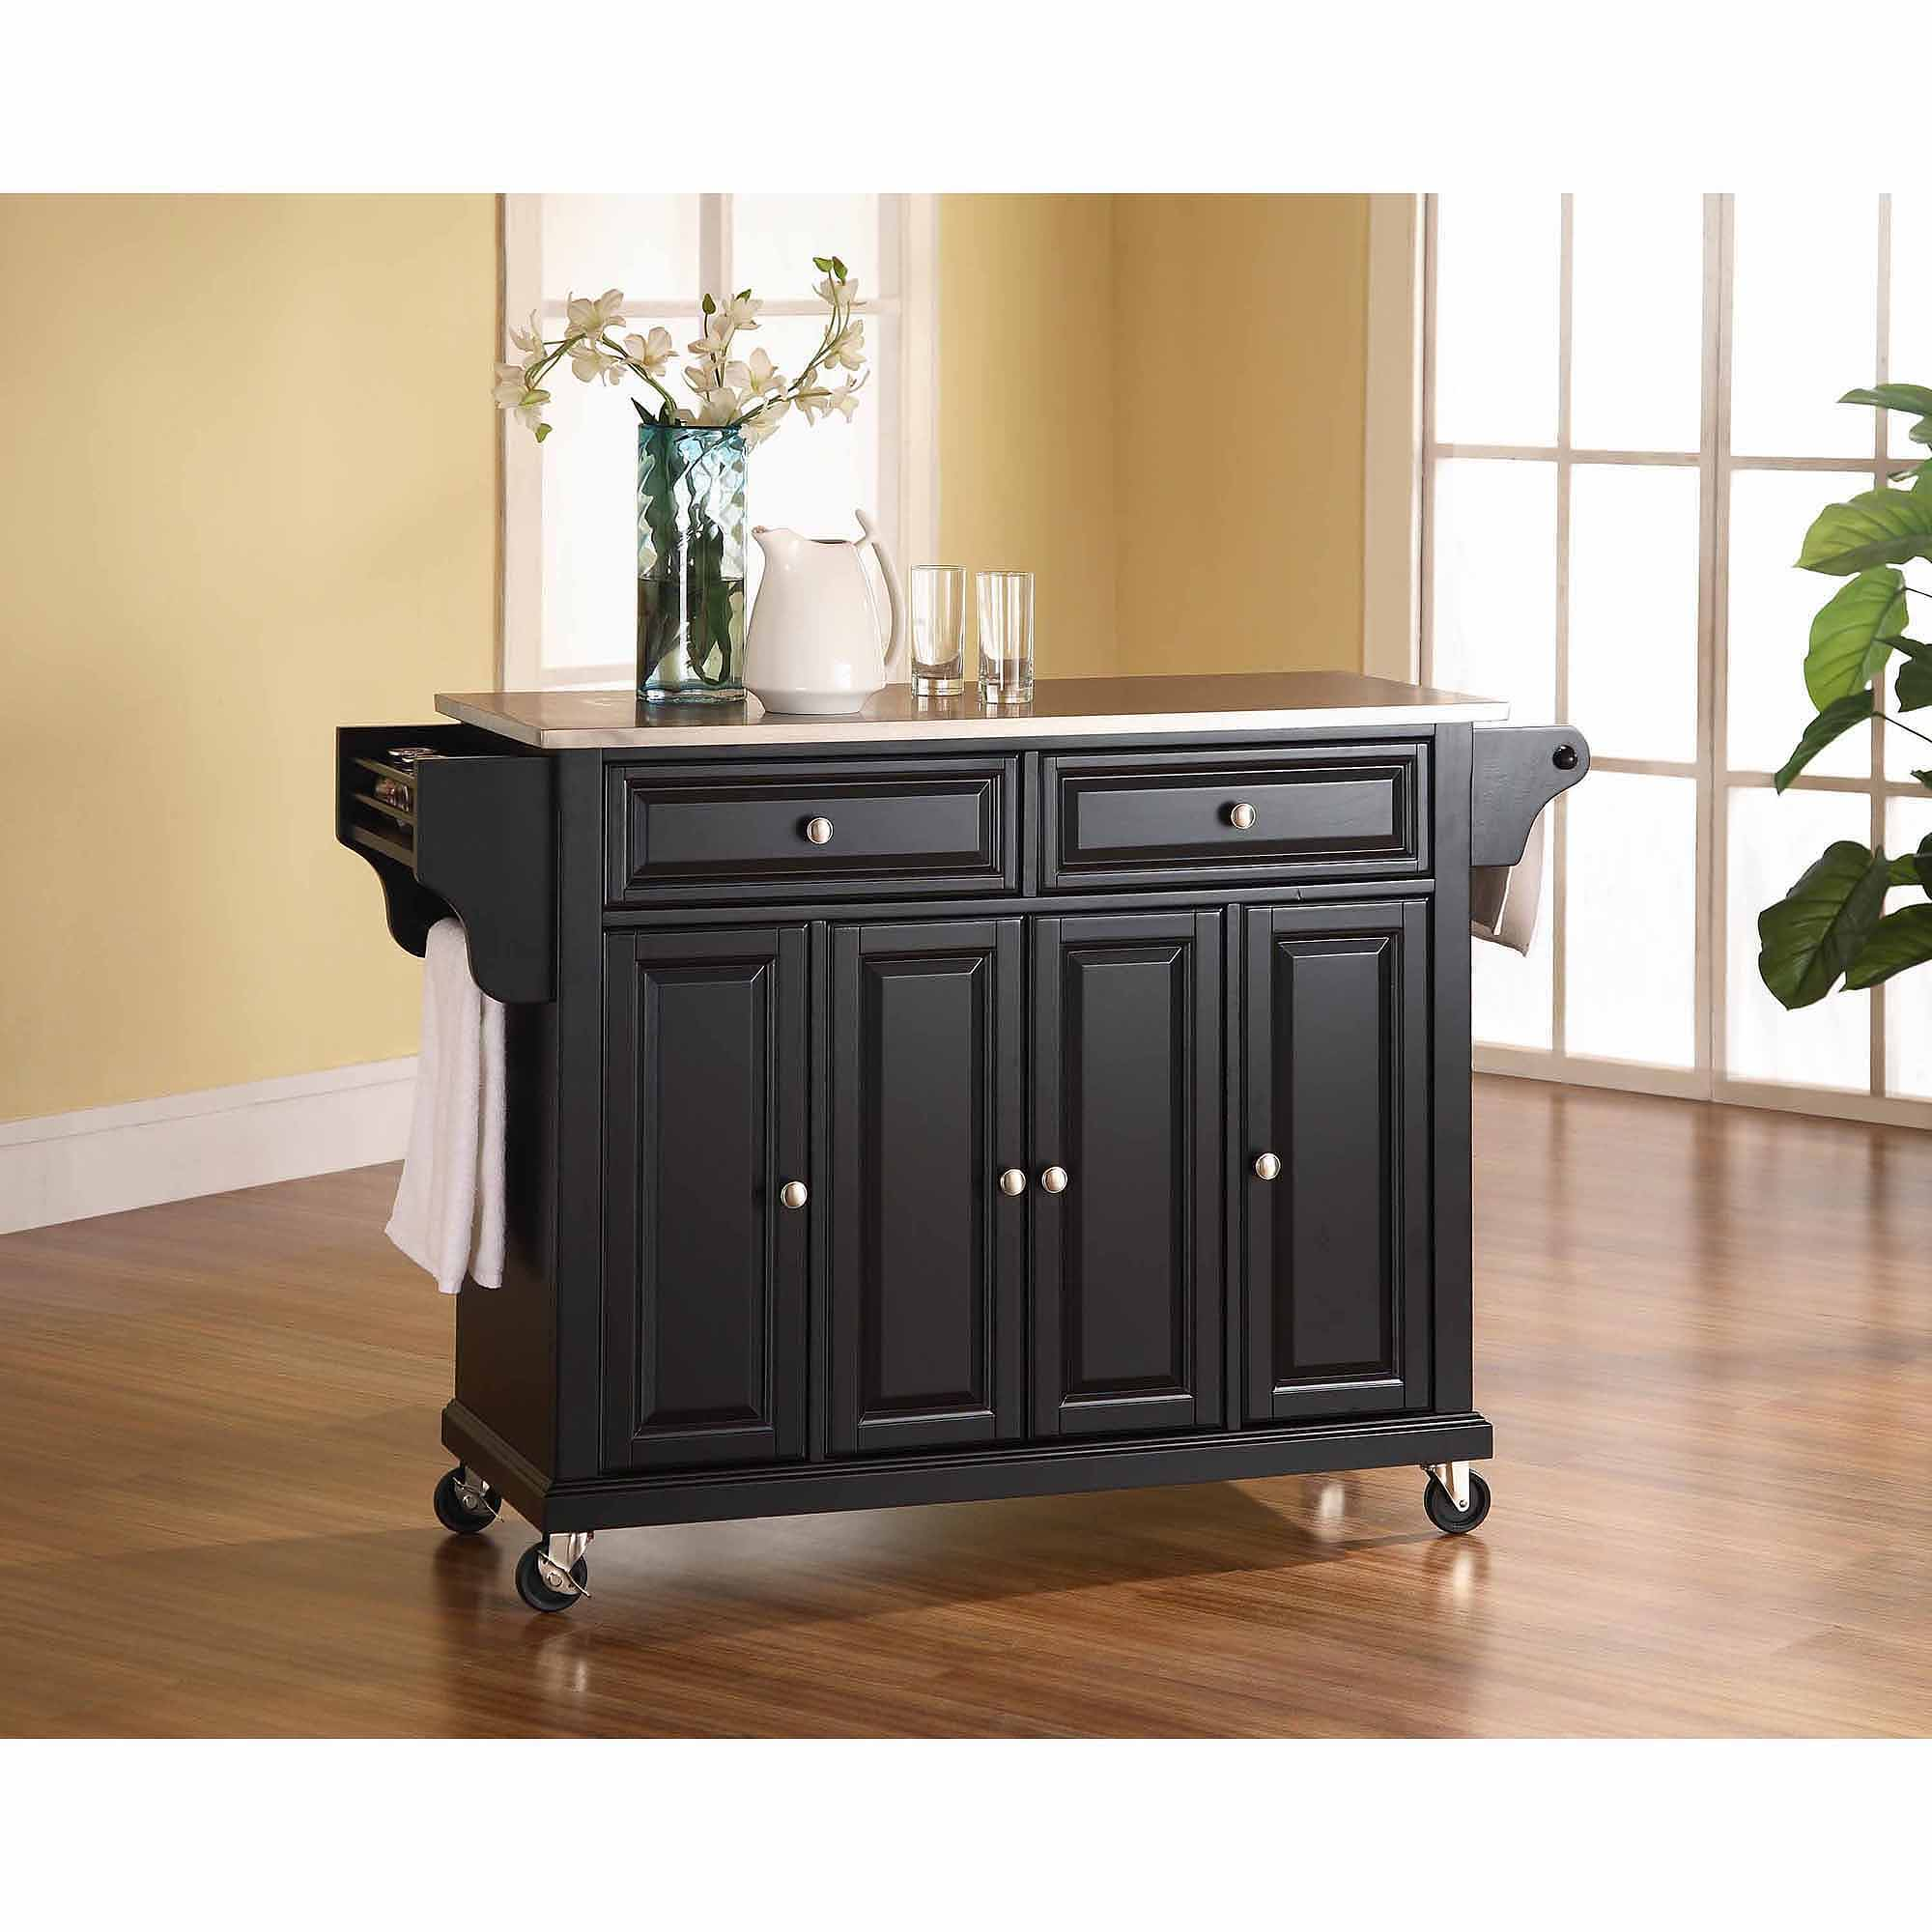 Crosley Furniture Stainless Steel Top Kitchen Cart